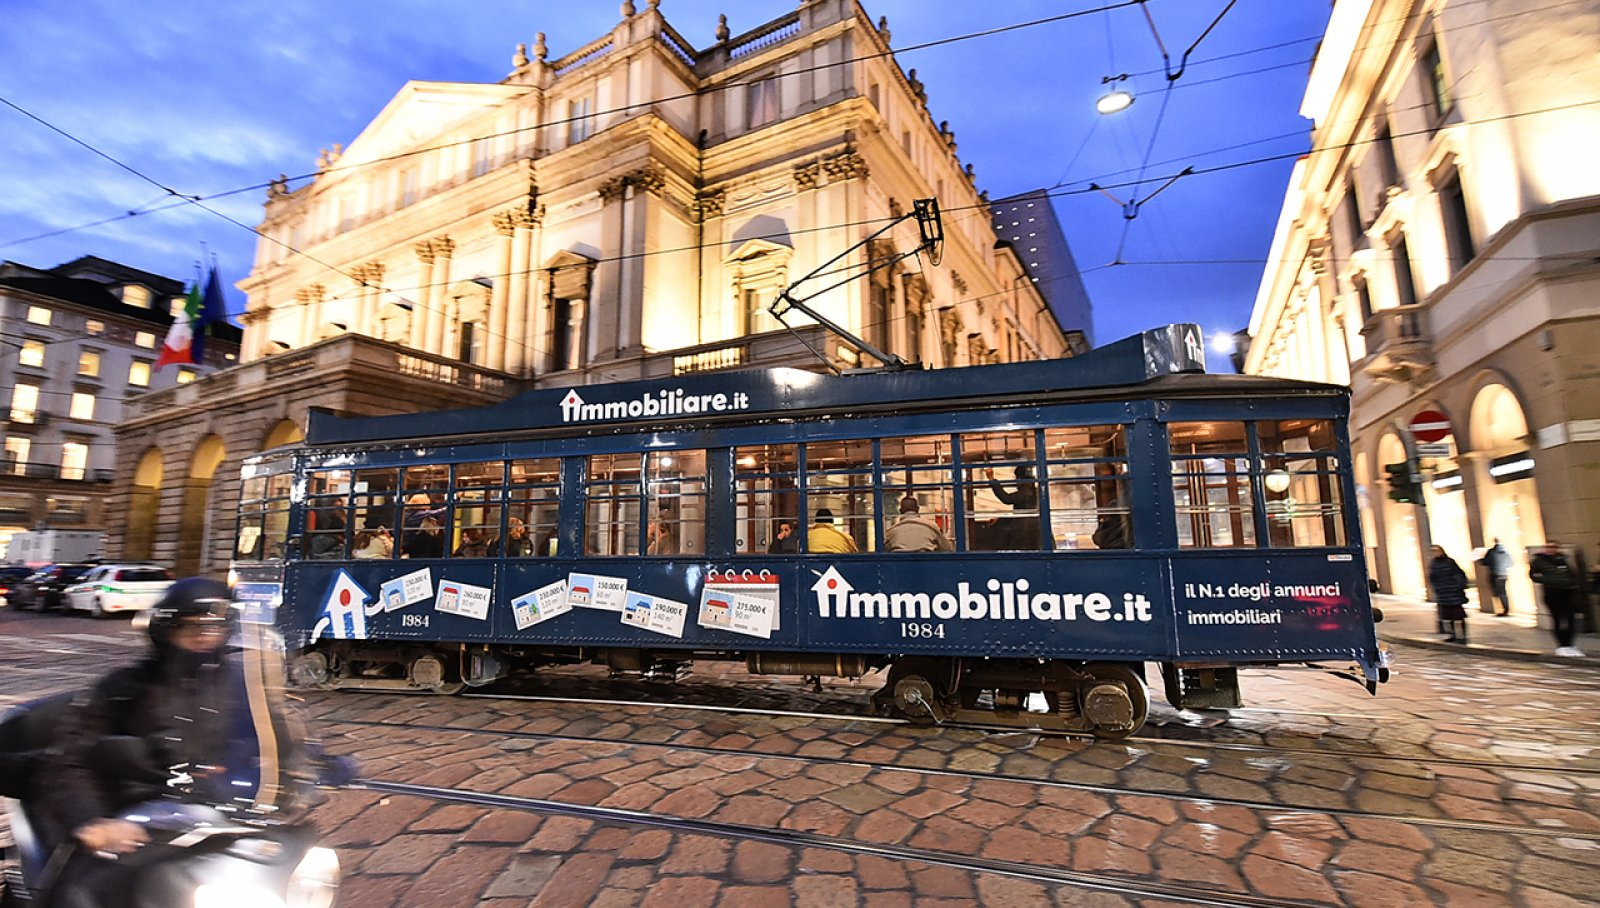 IMMOBILIARE-IT on the road con la sua prima campagna su rotaia